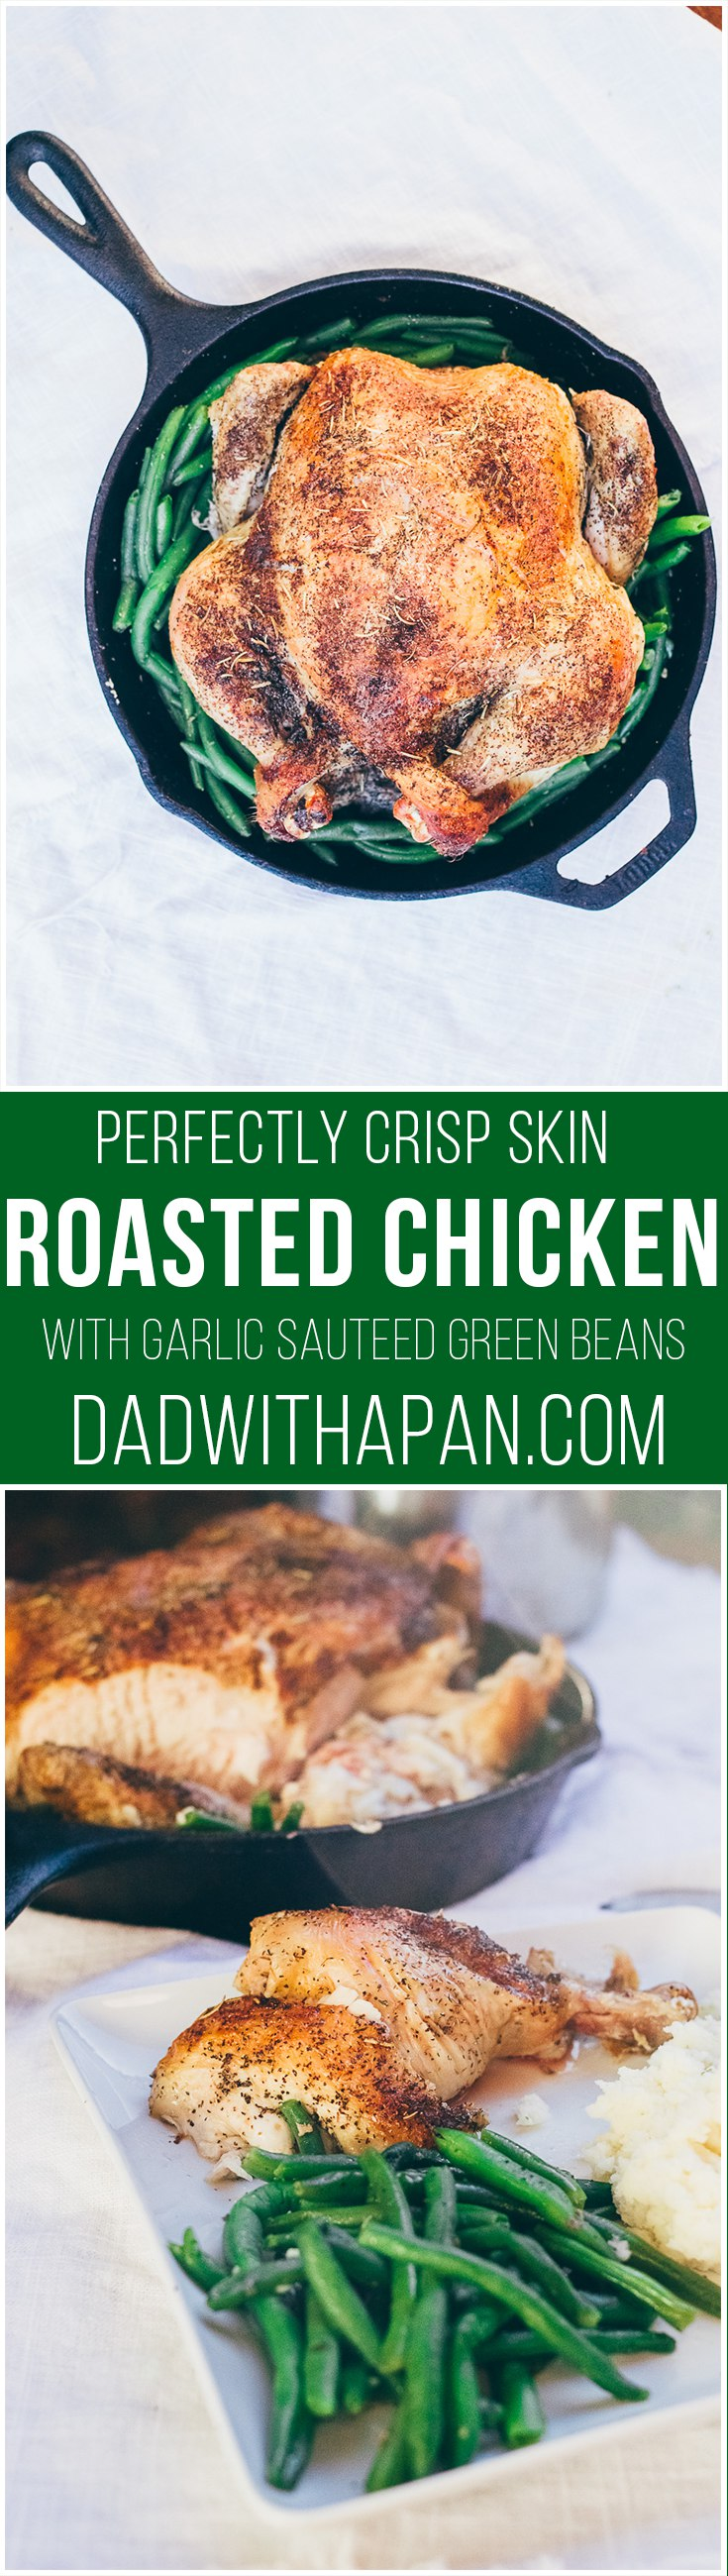 Crispy Herb Roasted Chicken with Sauteed Green Beans - Dad With A Pan